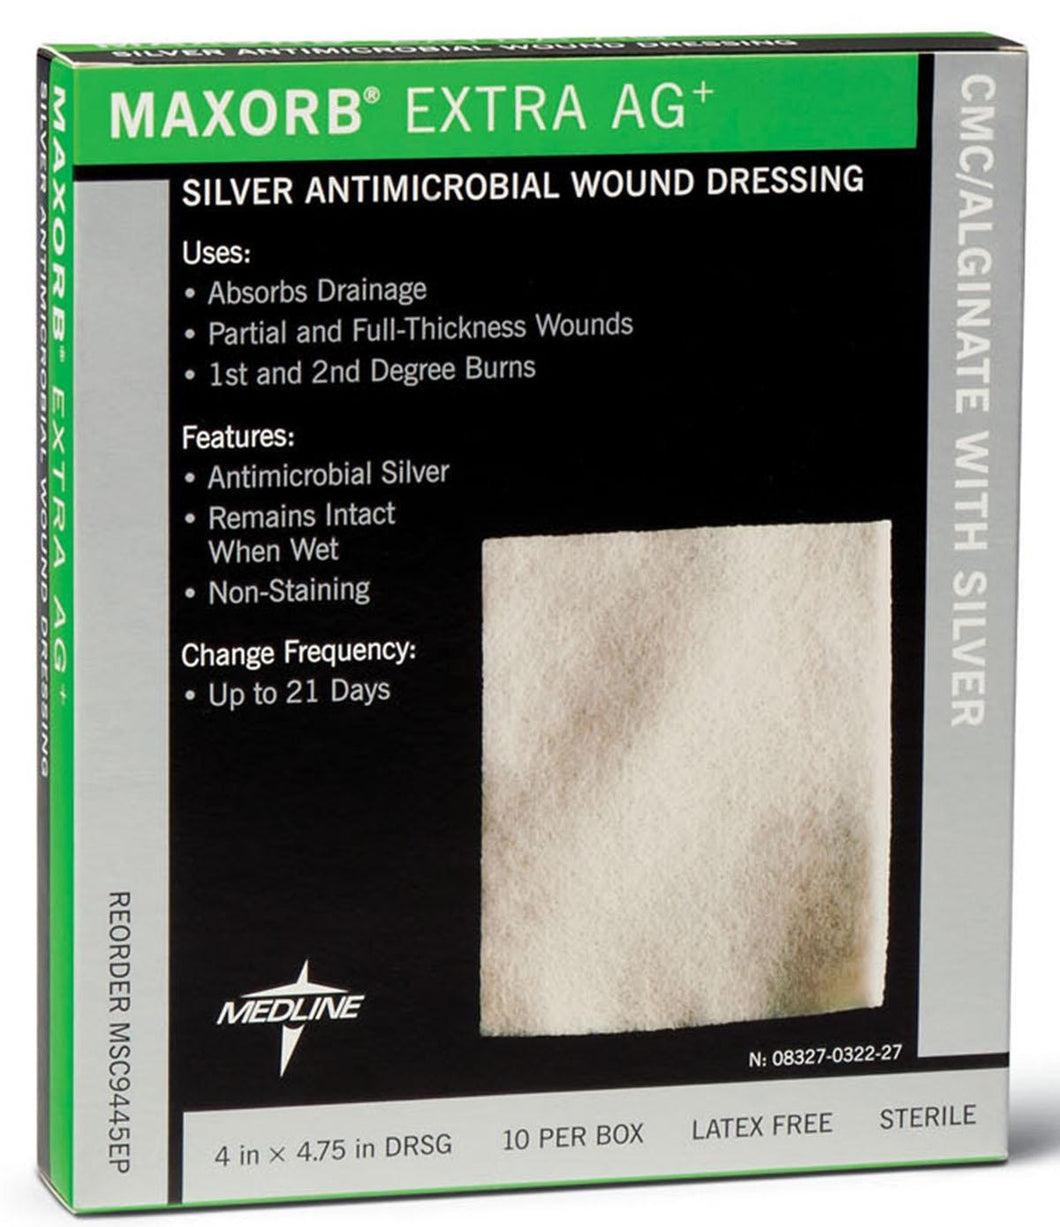 MSC9445EPZ DRESSING, MAXORB® EXTRA AG, ALGNTE, 4X4.75 BY MEDLINE